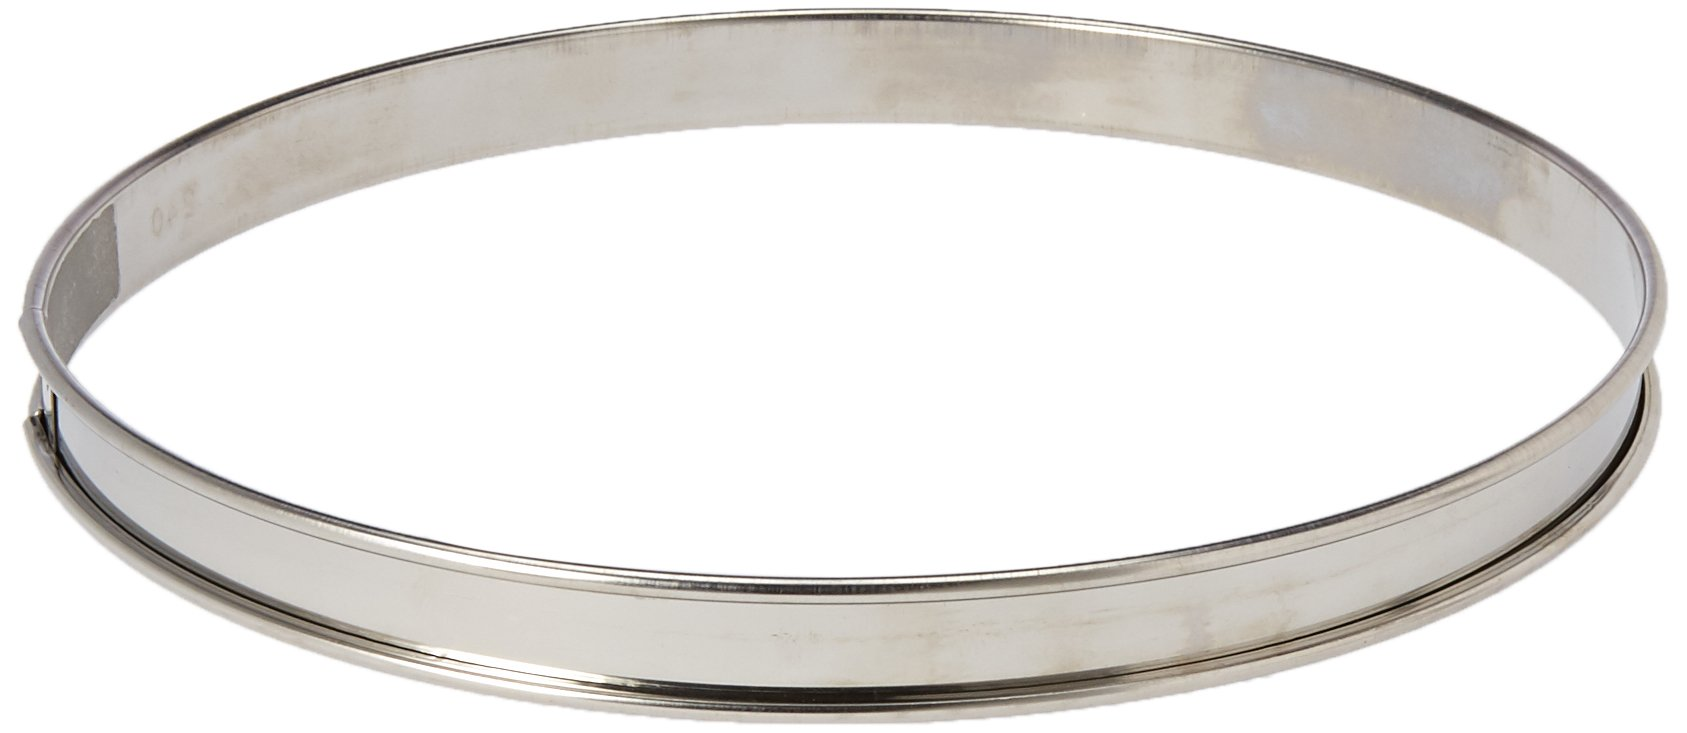 Matfer Bourgeat 371615 Plain Stainless Steel Tart Ring, 9.5'' Diameter by Matfer Bourgeat (Image #1)